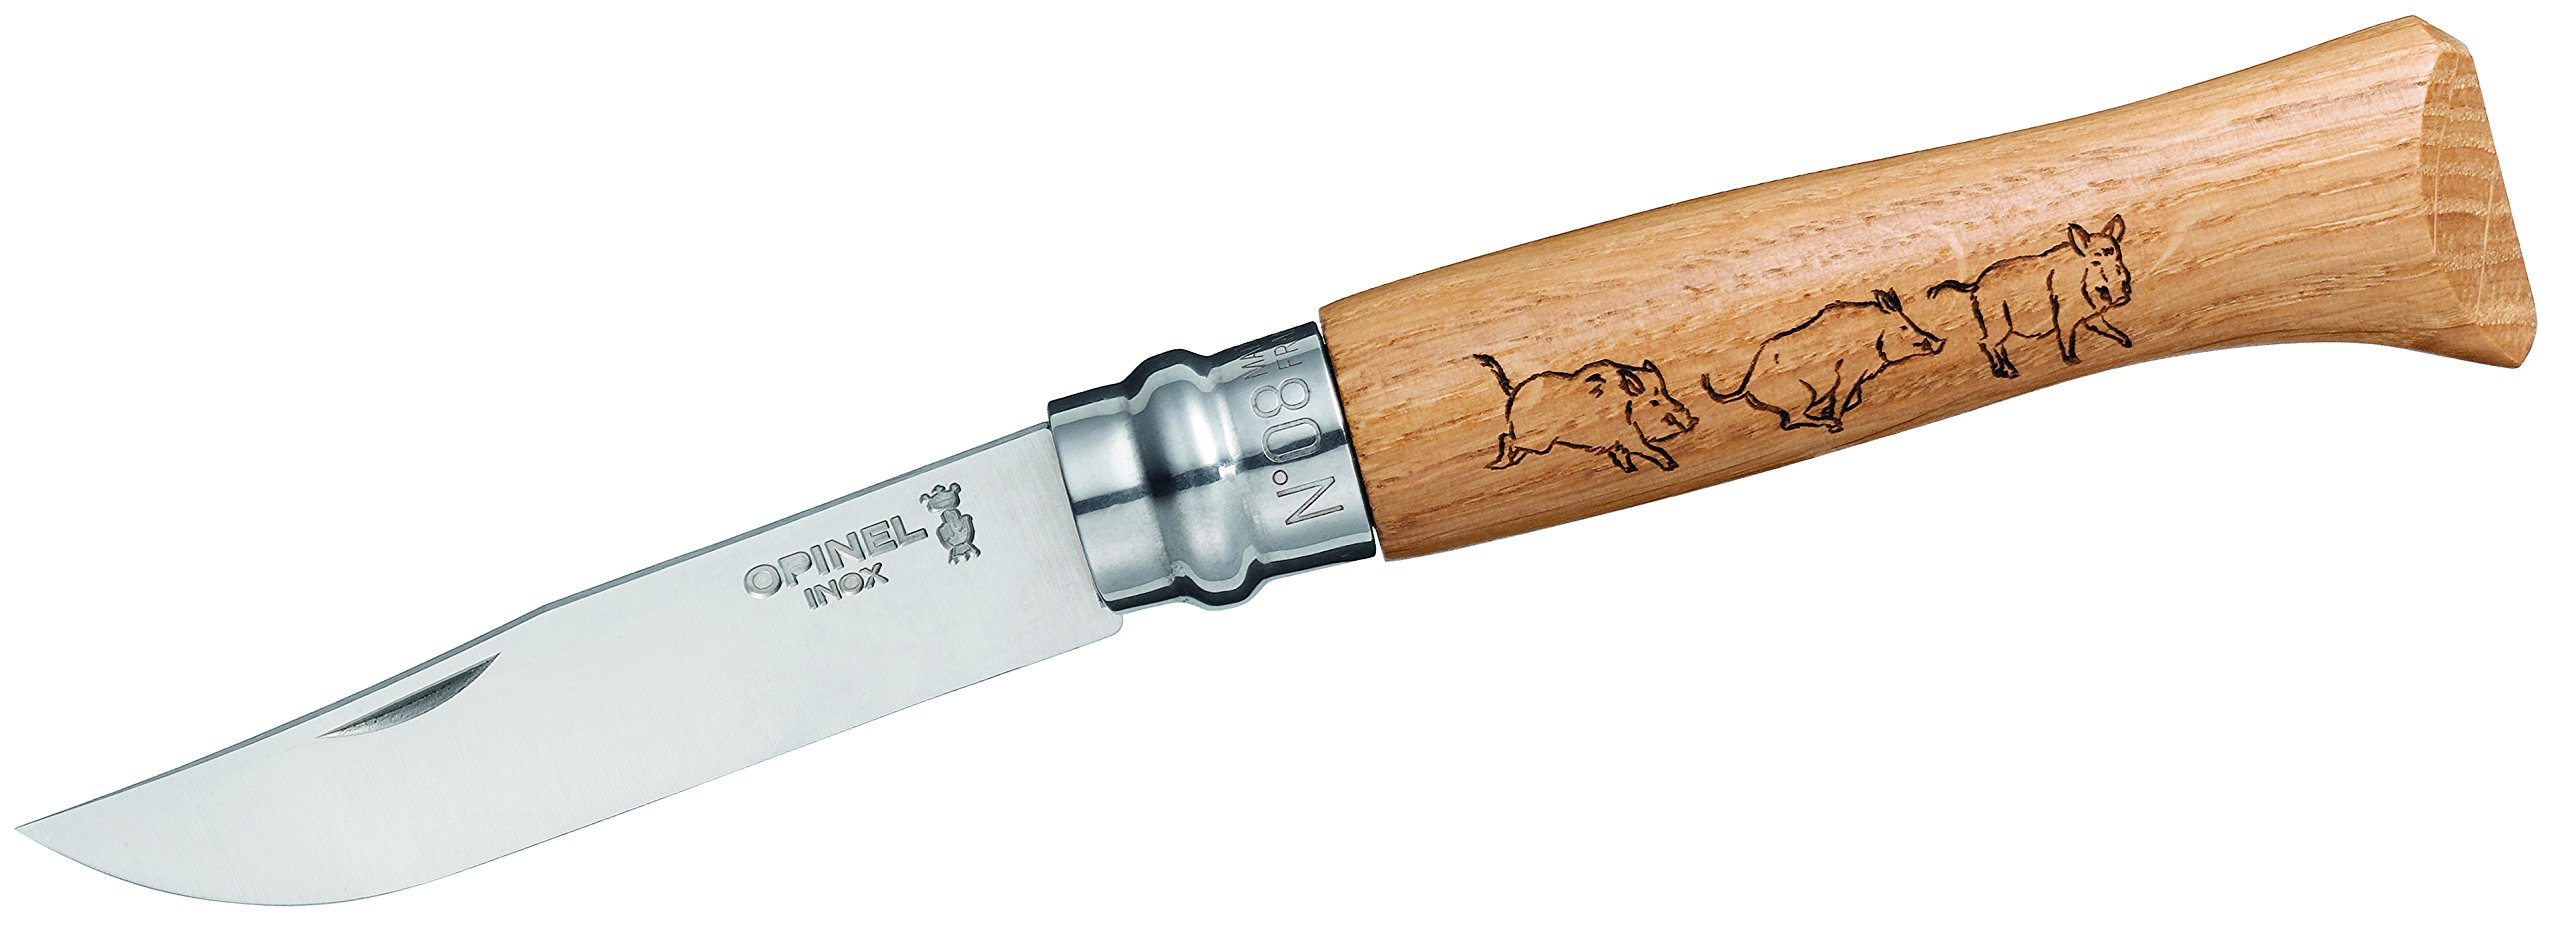 Opinel N Degree8 Stainless Steel Animalia Boar Boxed Stainless Steel Knife, 8.5 cm Blade